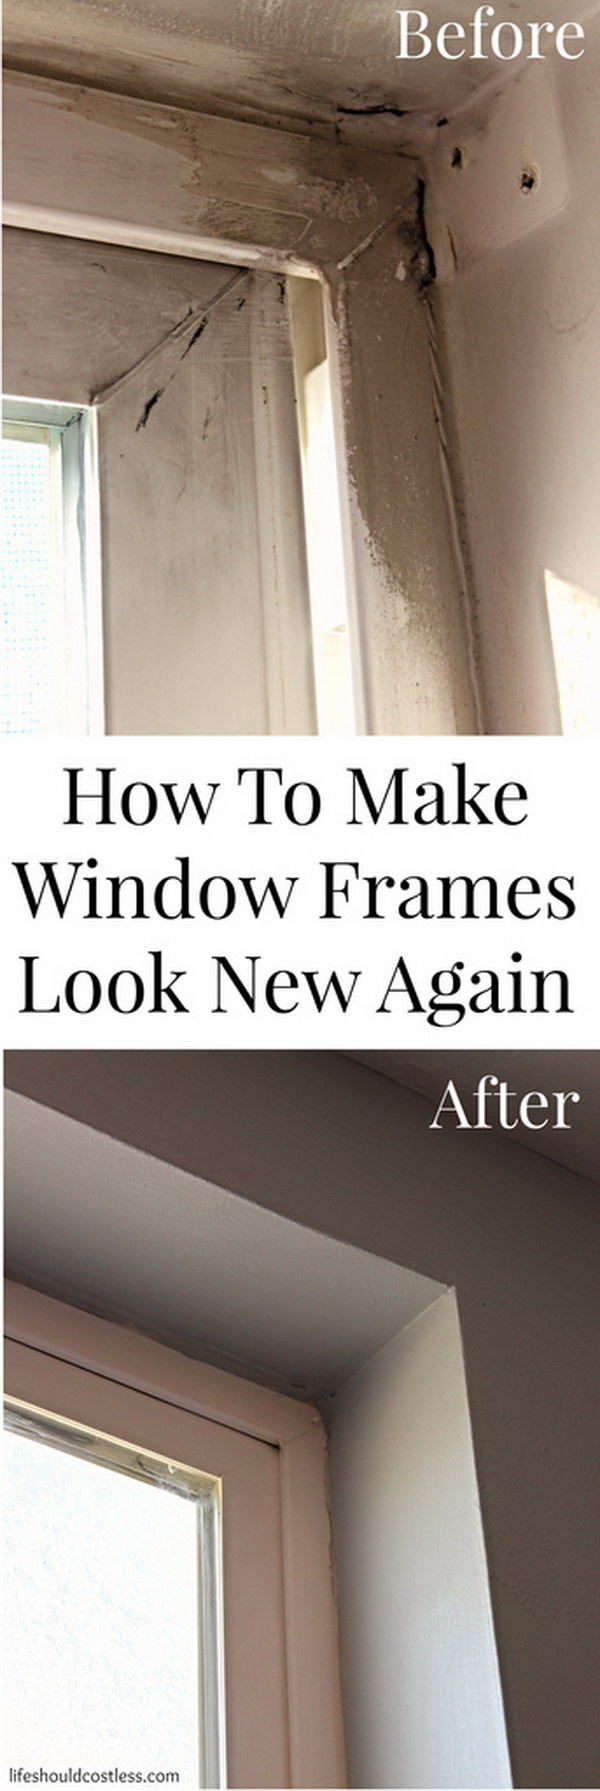 How To Make Window Frames Look New Again.